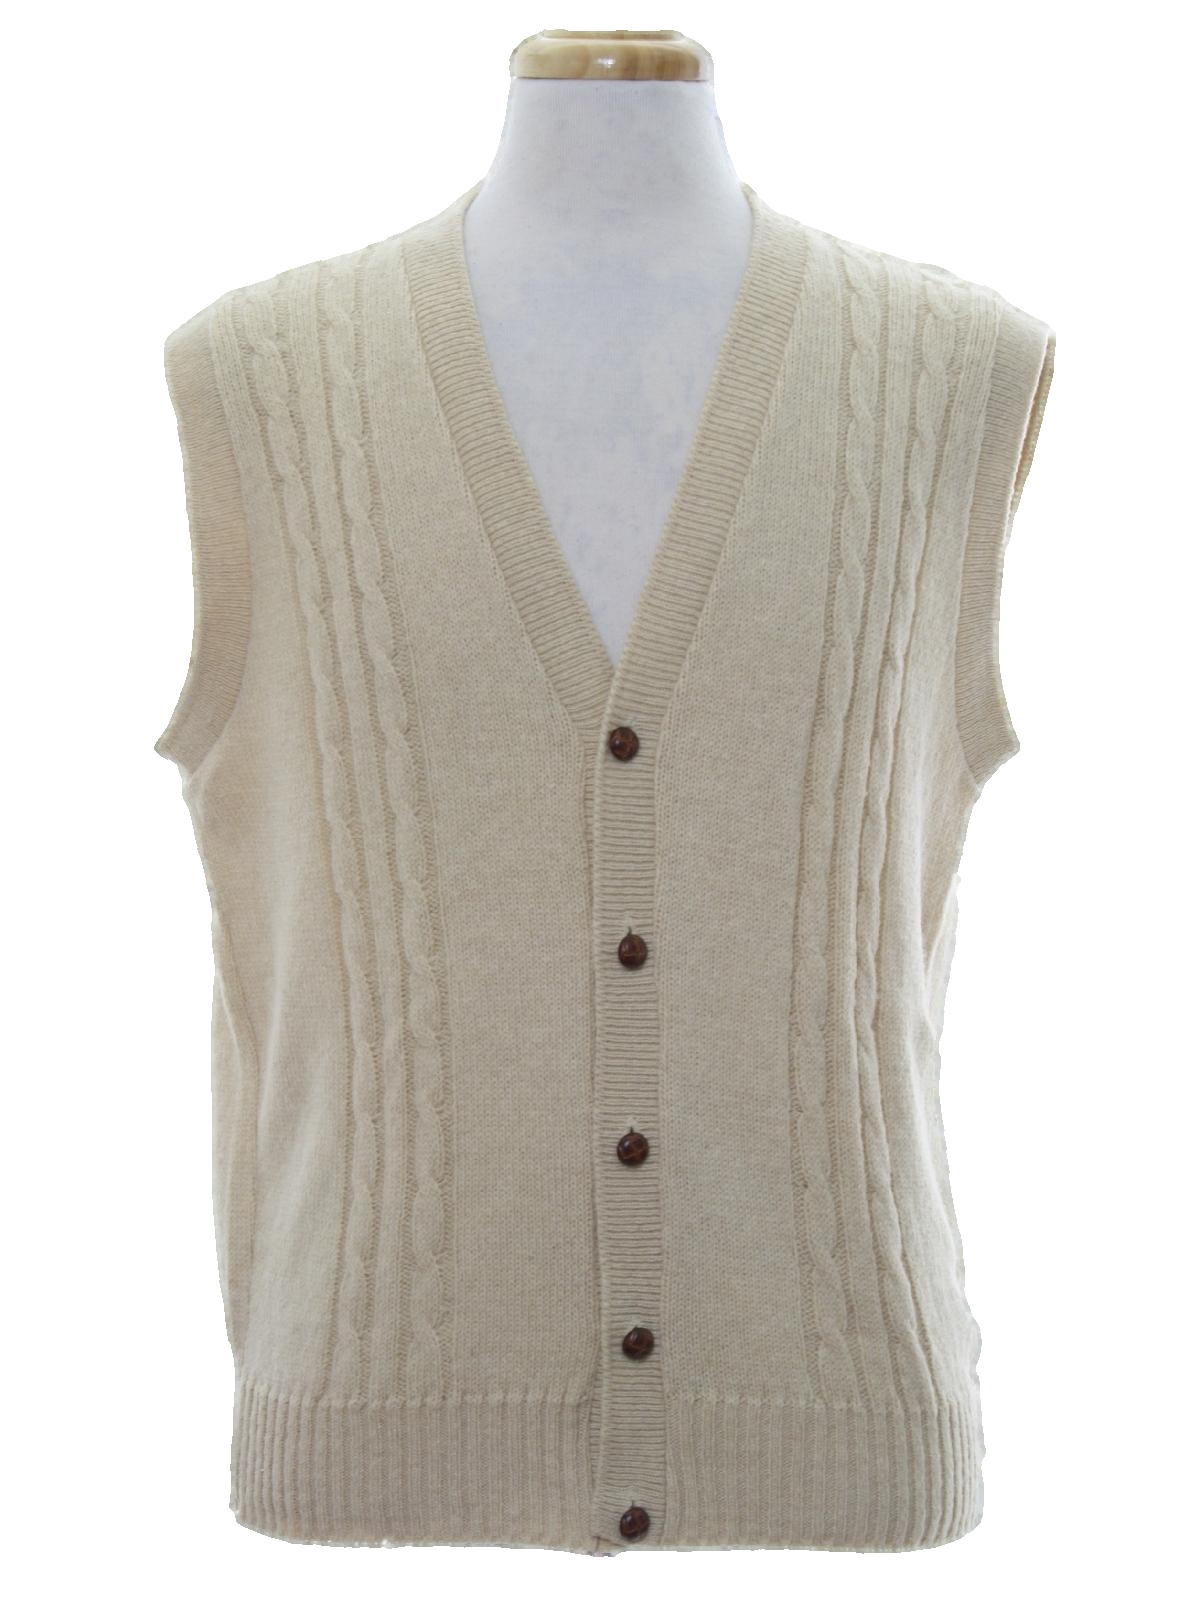 70s Sweater (Jantzen): 70s -Jantzen- Mens tan wool sweater vest ...